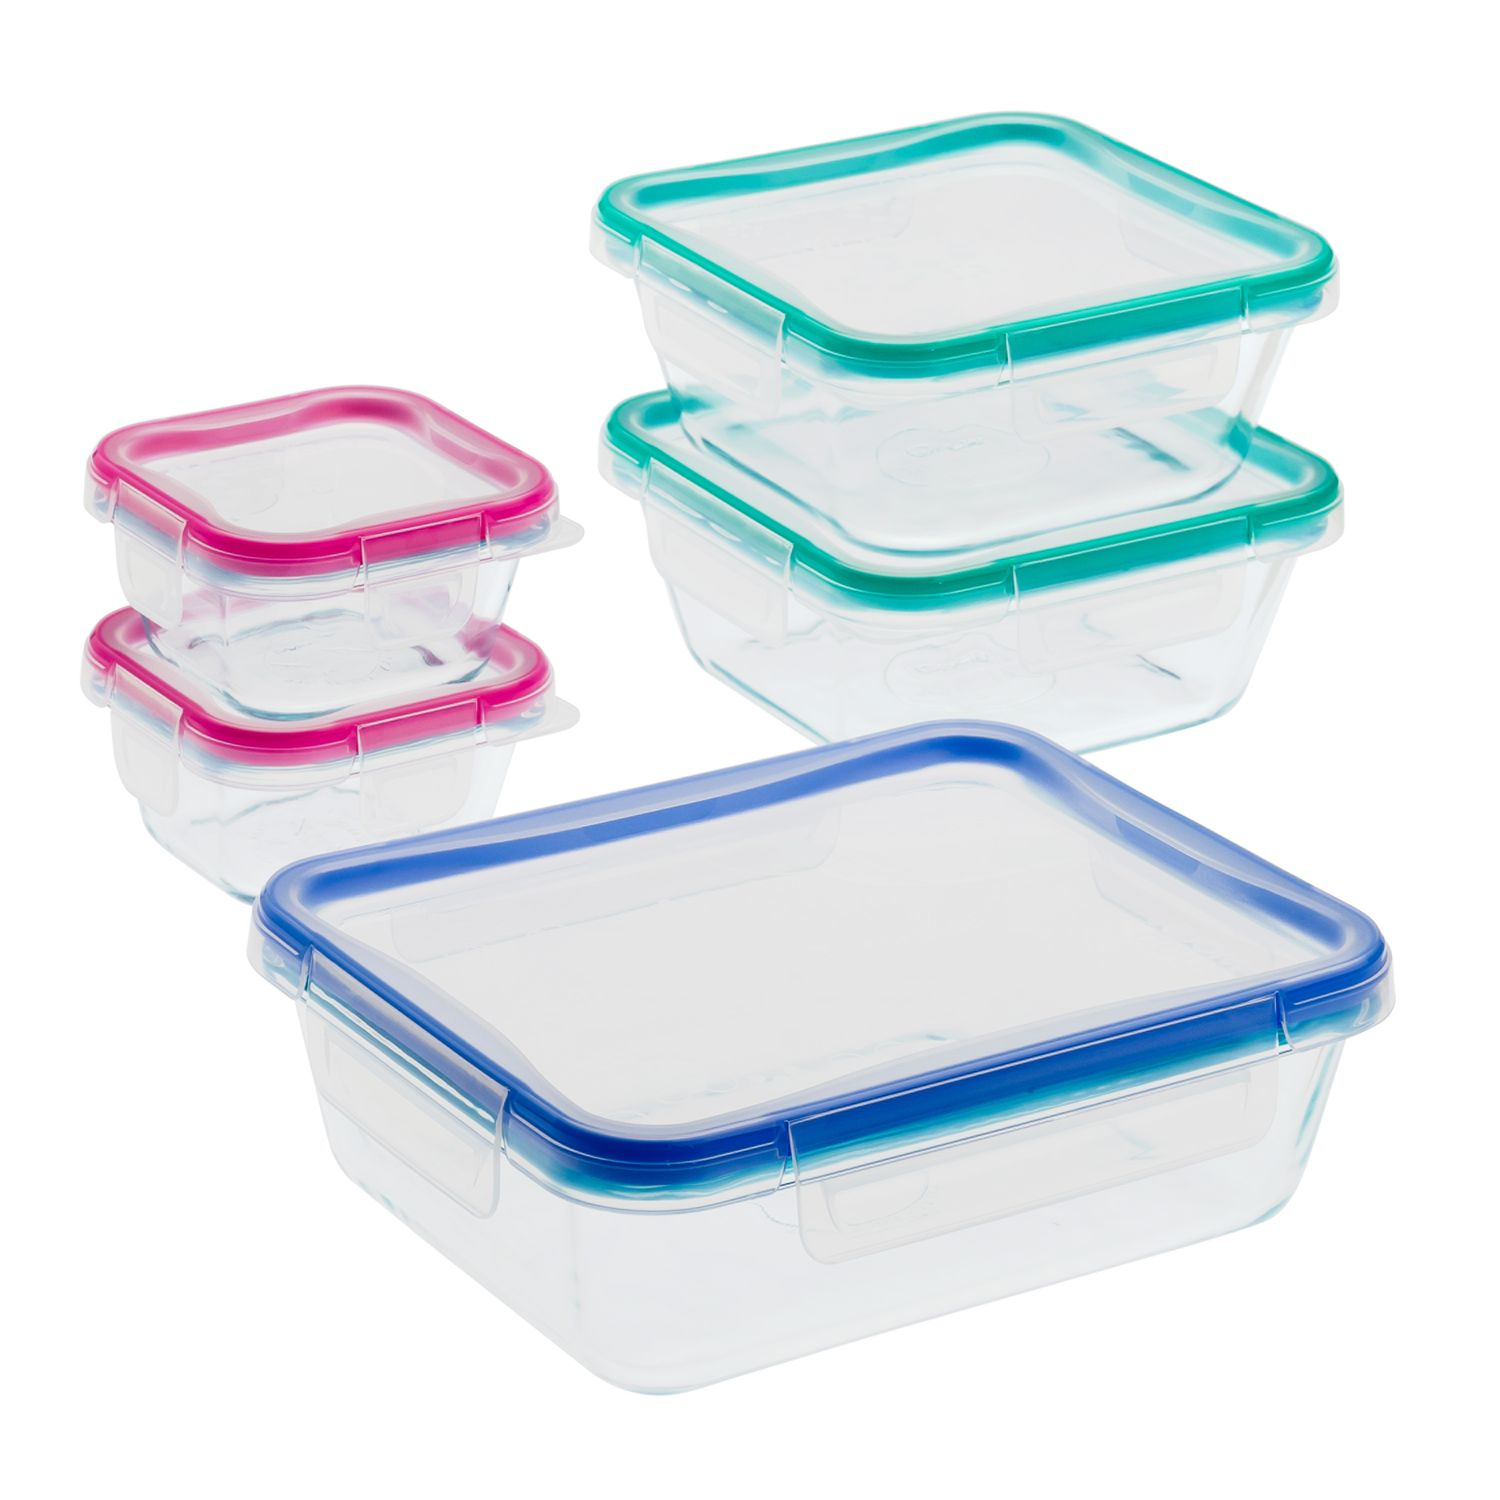 Shop Pyrex at the Amazon Storage & Organization store. Free Shipping on eligible items. Everyday low prices, save up to 50%.